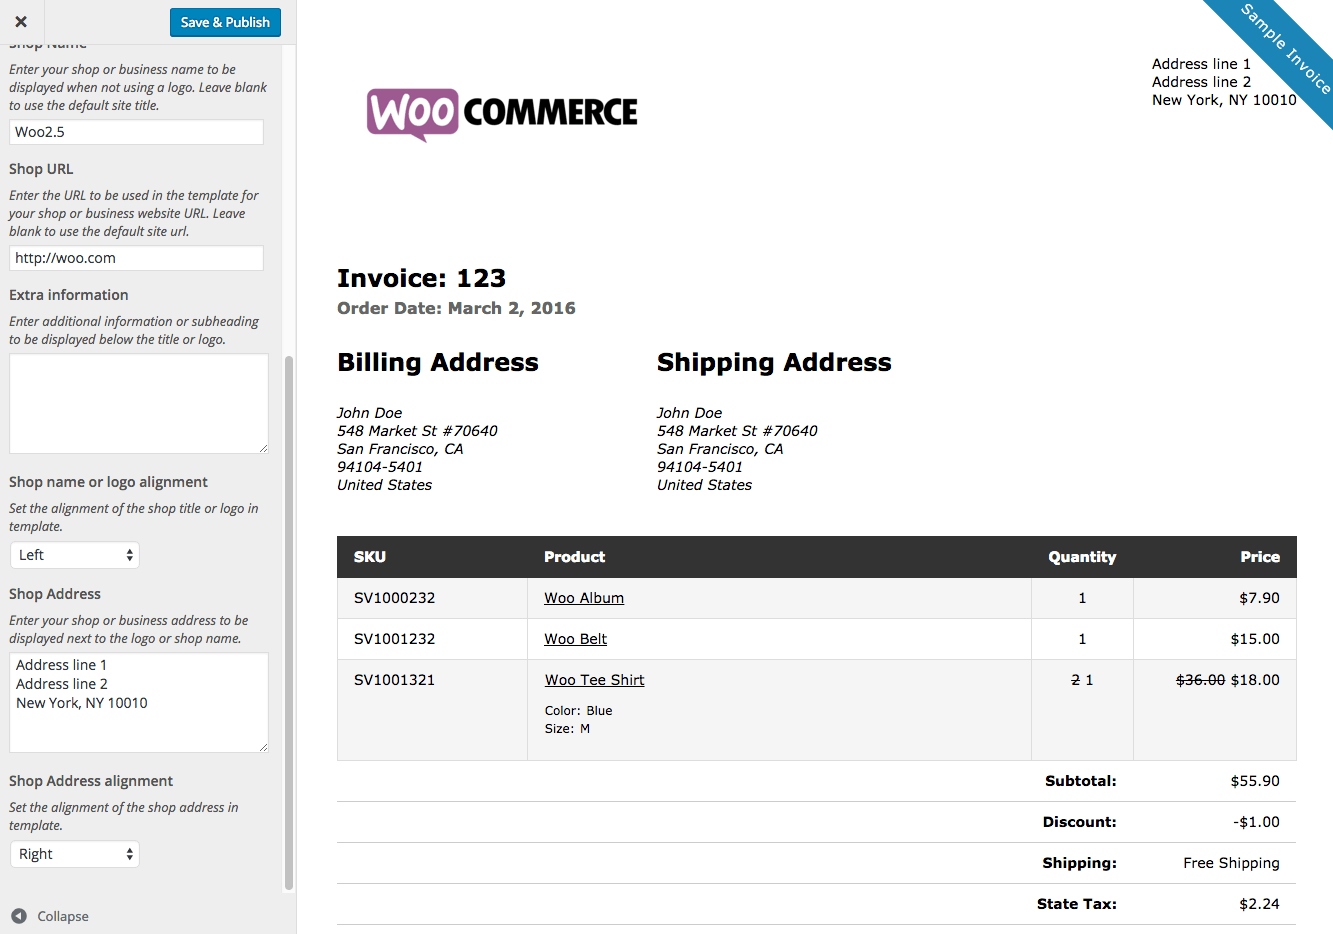 Ebitus  Pleasant Woocommerce Print Invoices Amp Packing Lists  Woocommerce Docs With Exquisite Woocommerce Print Invoices  Packing Lists Customizer With Cool Mobile Receipts Also Download Rent Receipt Format In Addition Generate Fake Receipt And Medicare Receipt As Well As Sample Rent Receipts Additionally Amount Receipt Format From Docswoocommercecom With Ebitus  Exquisite Woocommerce Print Invoices Amp Packing Lists  Woocommerce Docs With Cool Woocommerce Print Invoices  Packing Lists Customizer And Pleasant Mobile Receipts Also Download Rent Receipt Format In Addition Generate Fake Receipt From Docswoocommercecom